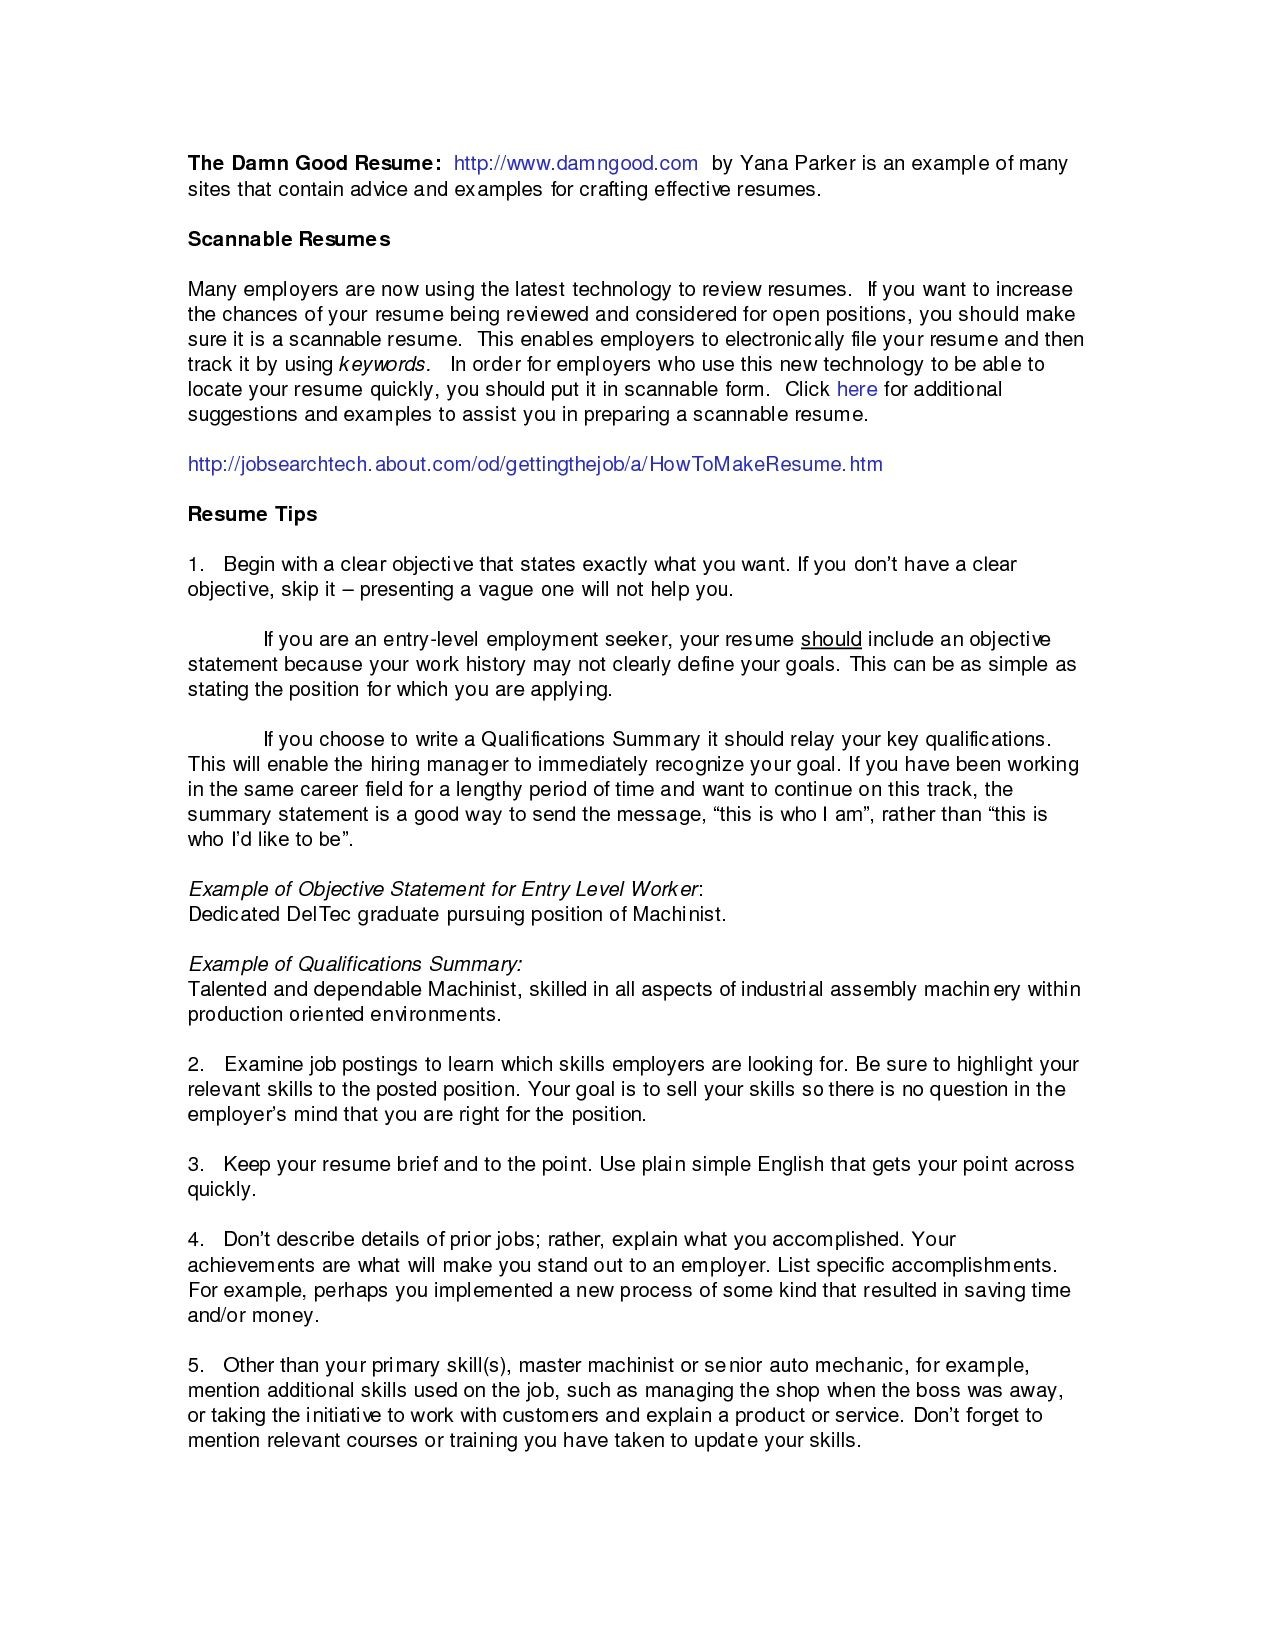 resume titles examples that stand out Collection-Resume Titles Examples that Stand Out 17 Resume Titles Examples that Stand Out 12-b